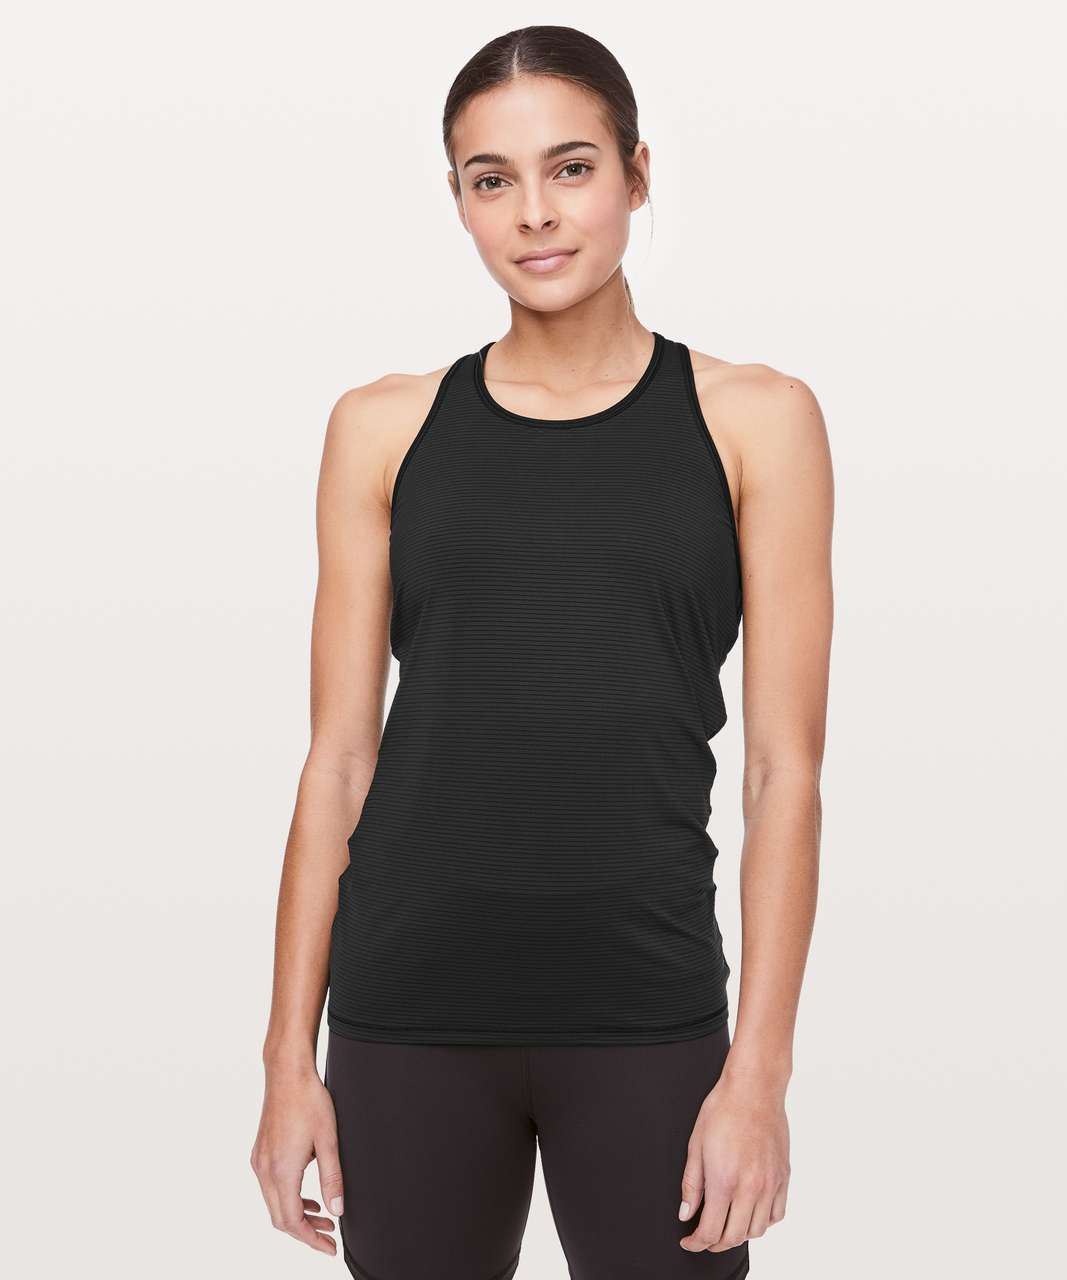 Lululemon Ruche Of Adrenaline Tank - Black